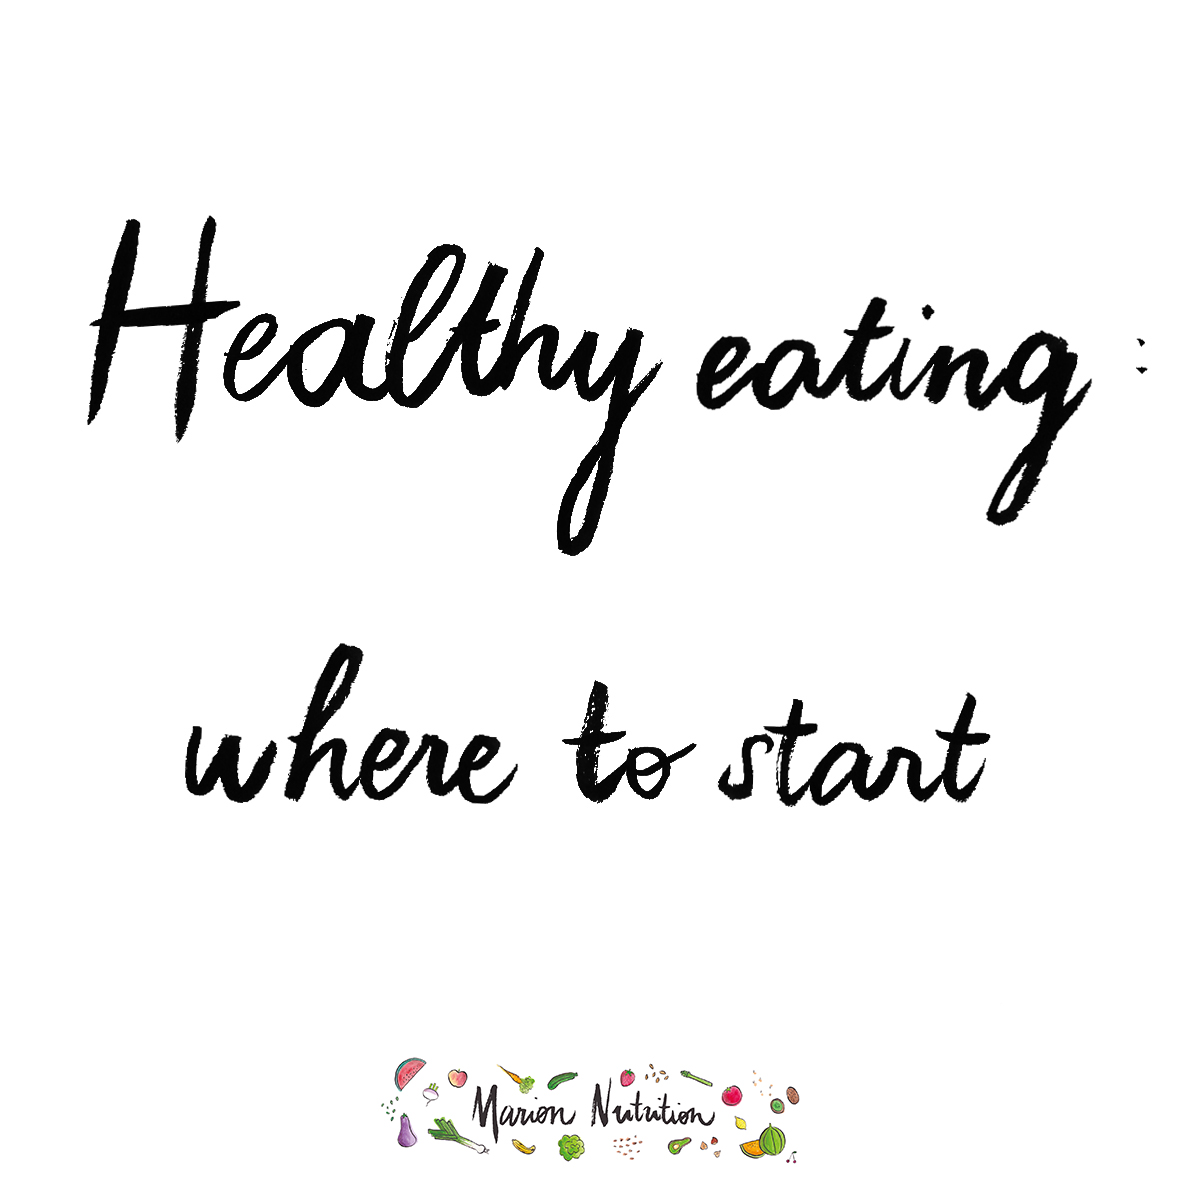 Healthy eating where to start